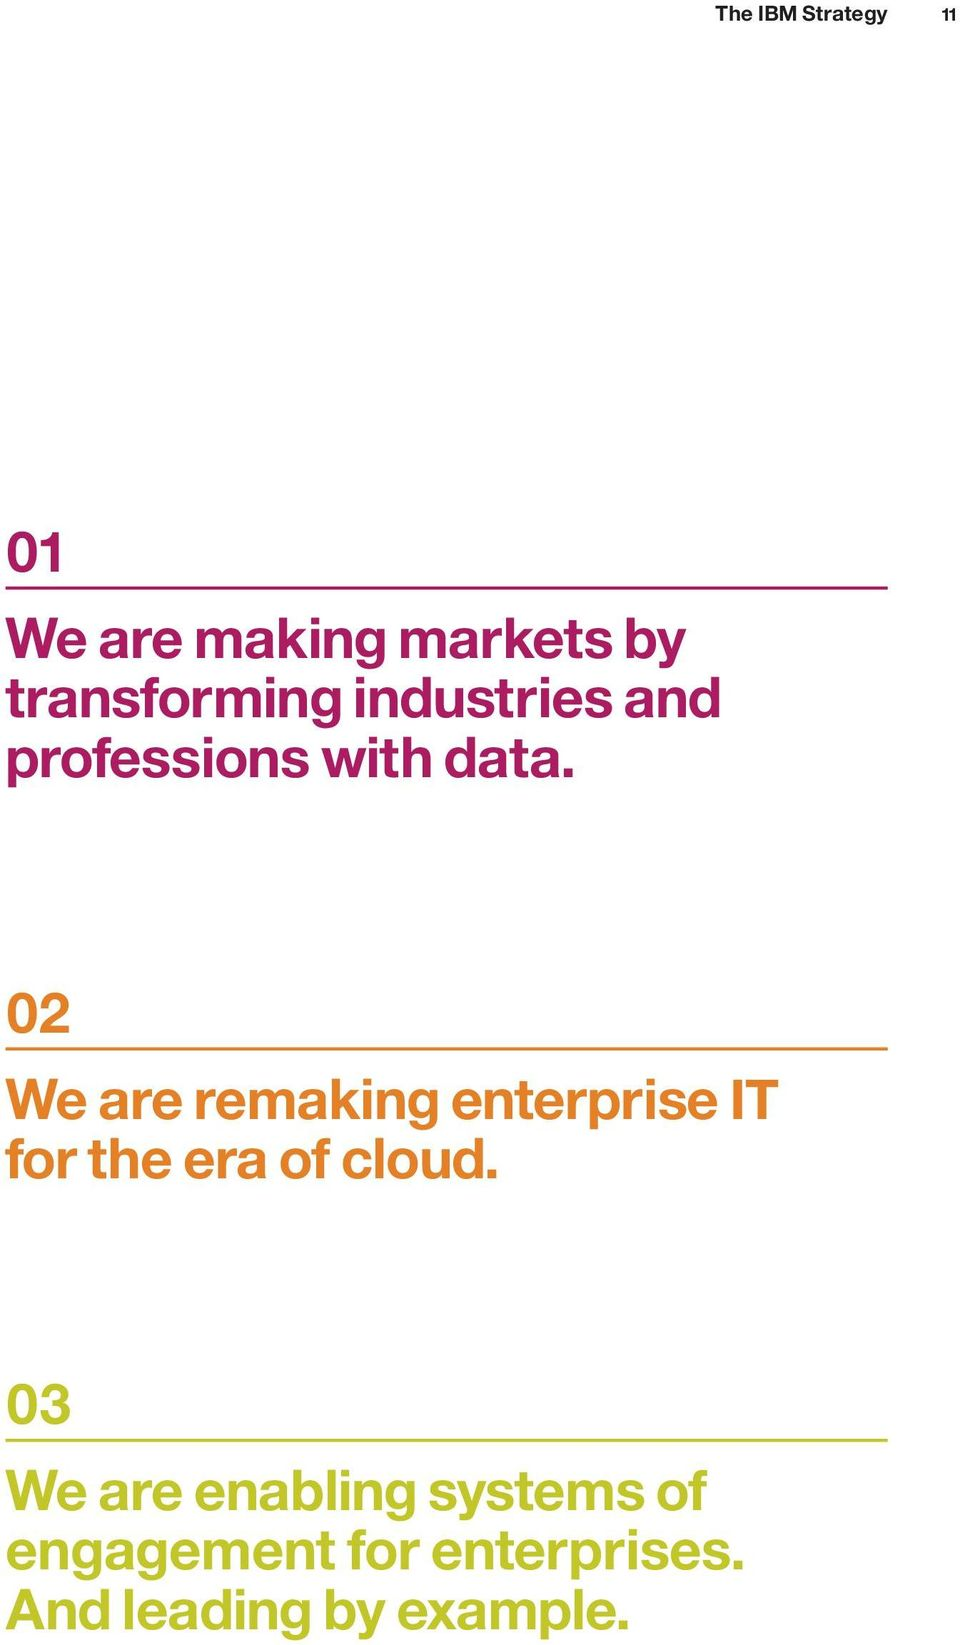 02 We are remaking enterprise IT for the era of cloud.